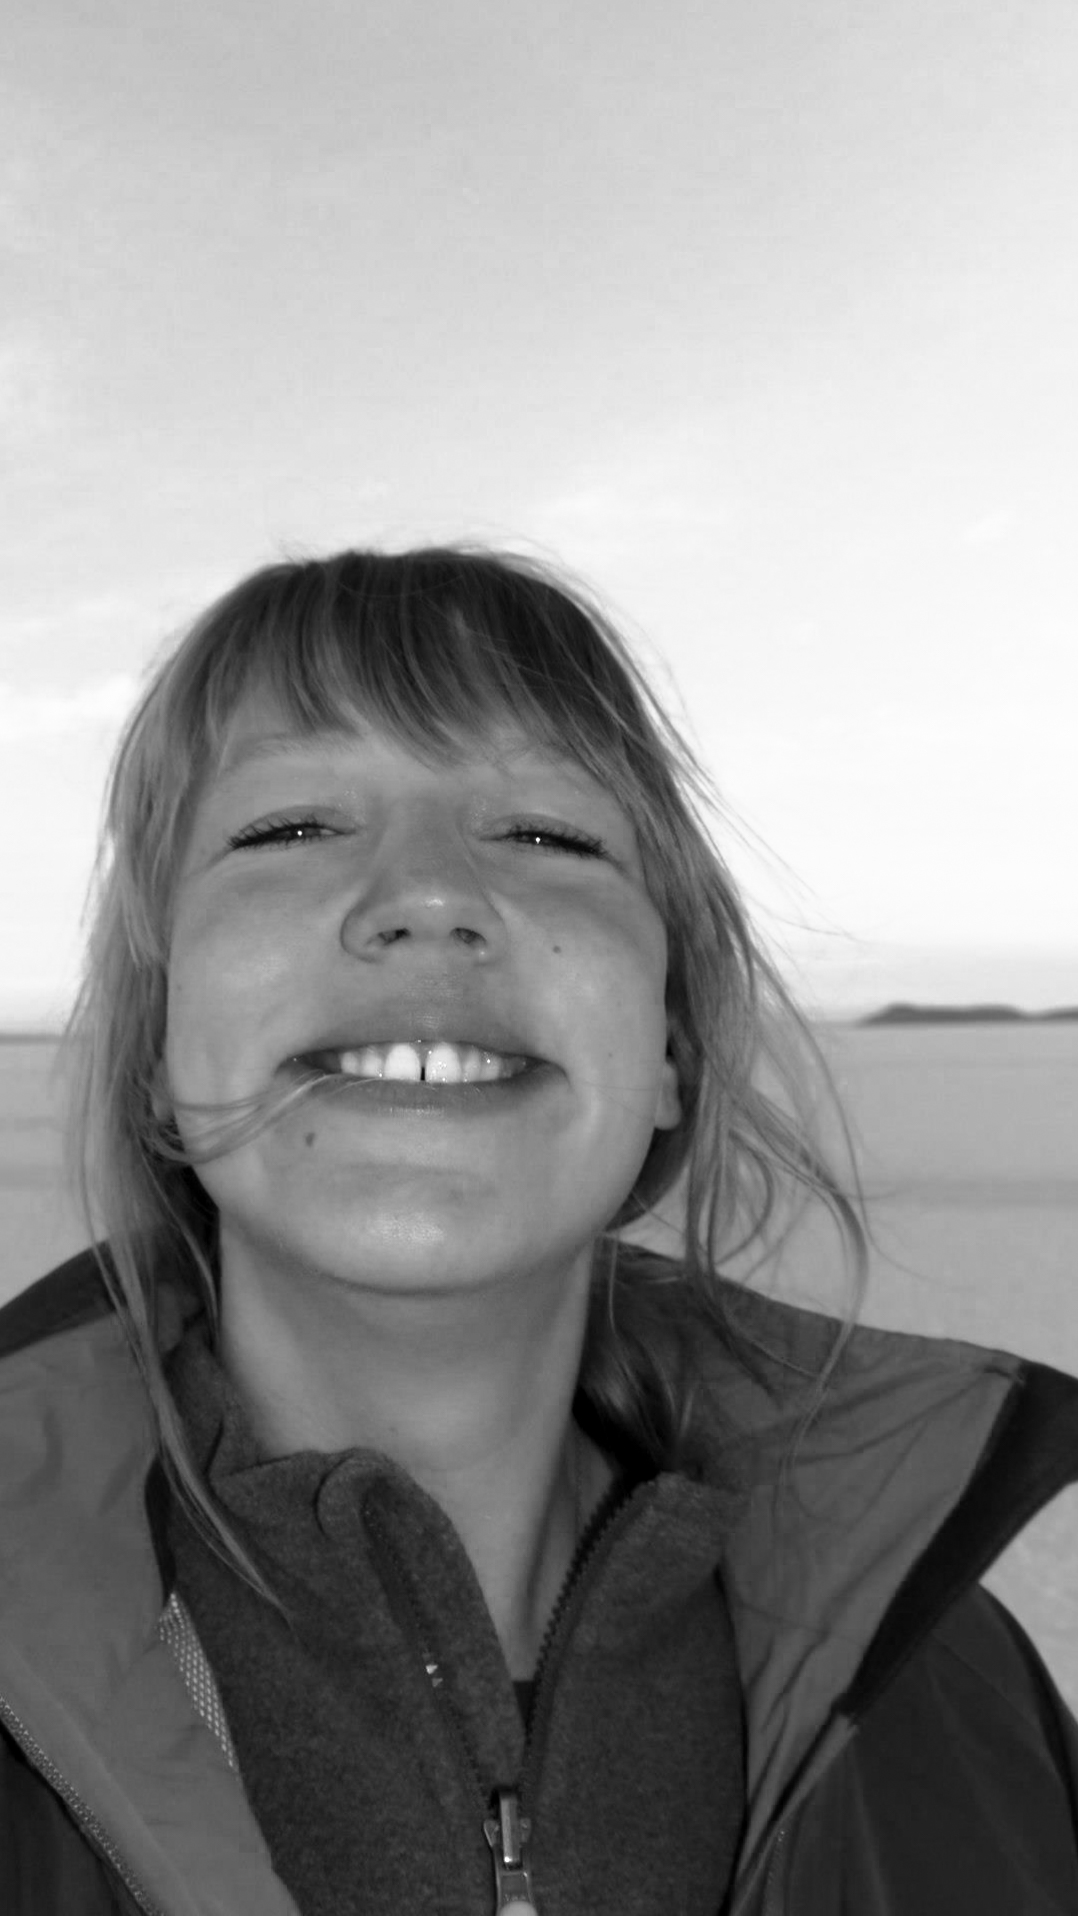 Frances Freeman - Head Editor   Frances is a London based creative and video editor. She has worked internationally on a wide variety of corporate, charity and documentary projects as well as working with theatre. She joined Tiny Wolf in 2017.